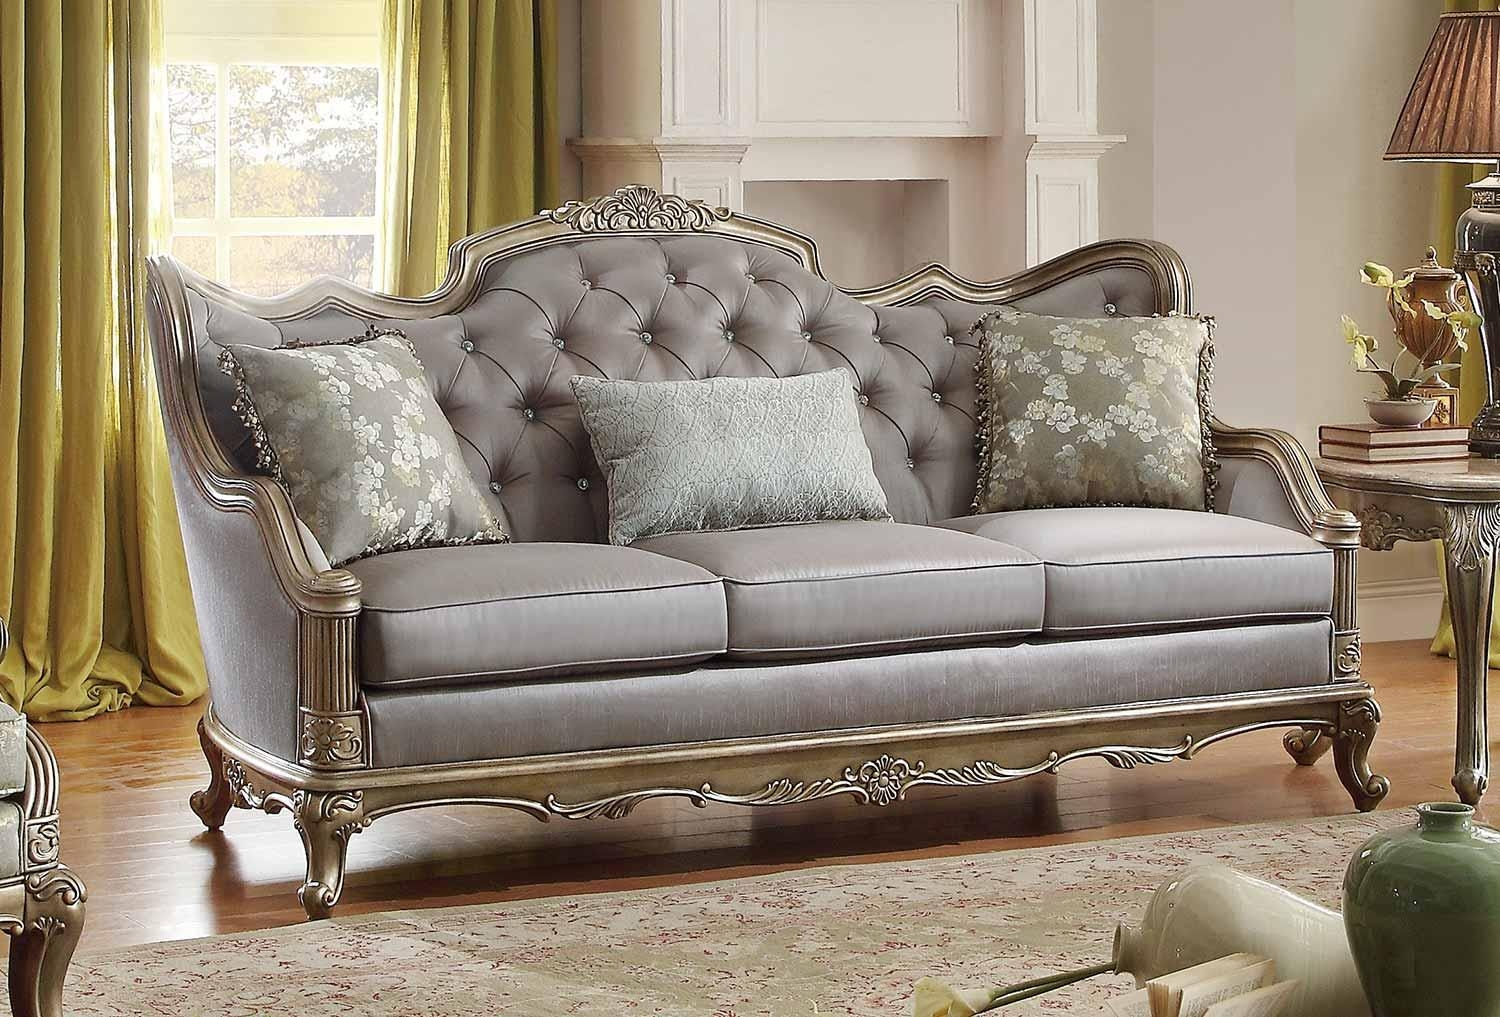 Homelegance Fiorella Sofa – Dusky Taupe 8412 3 With Homelegance Sofas (Image 8 of 20)